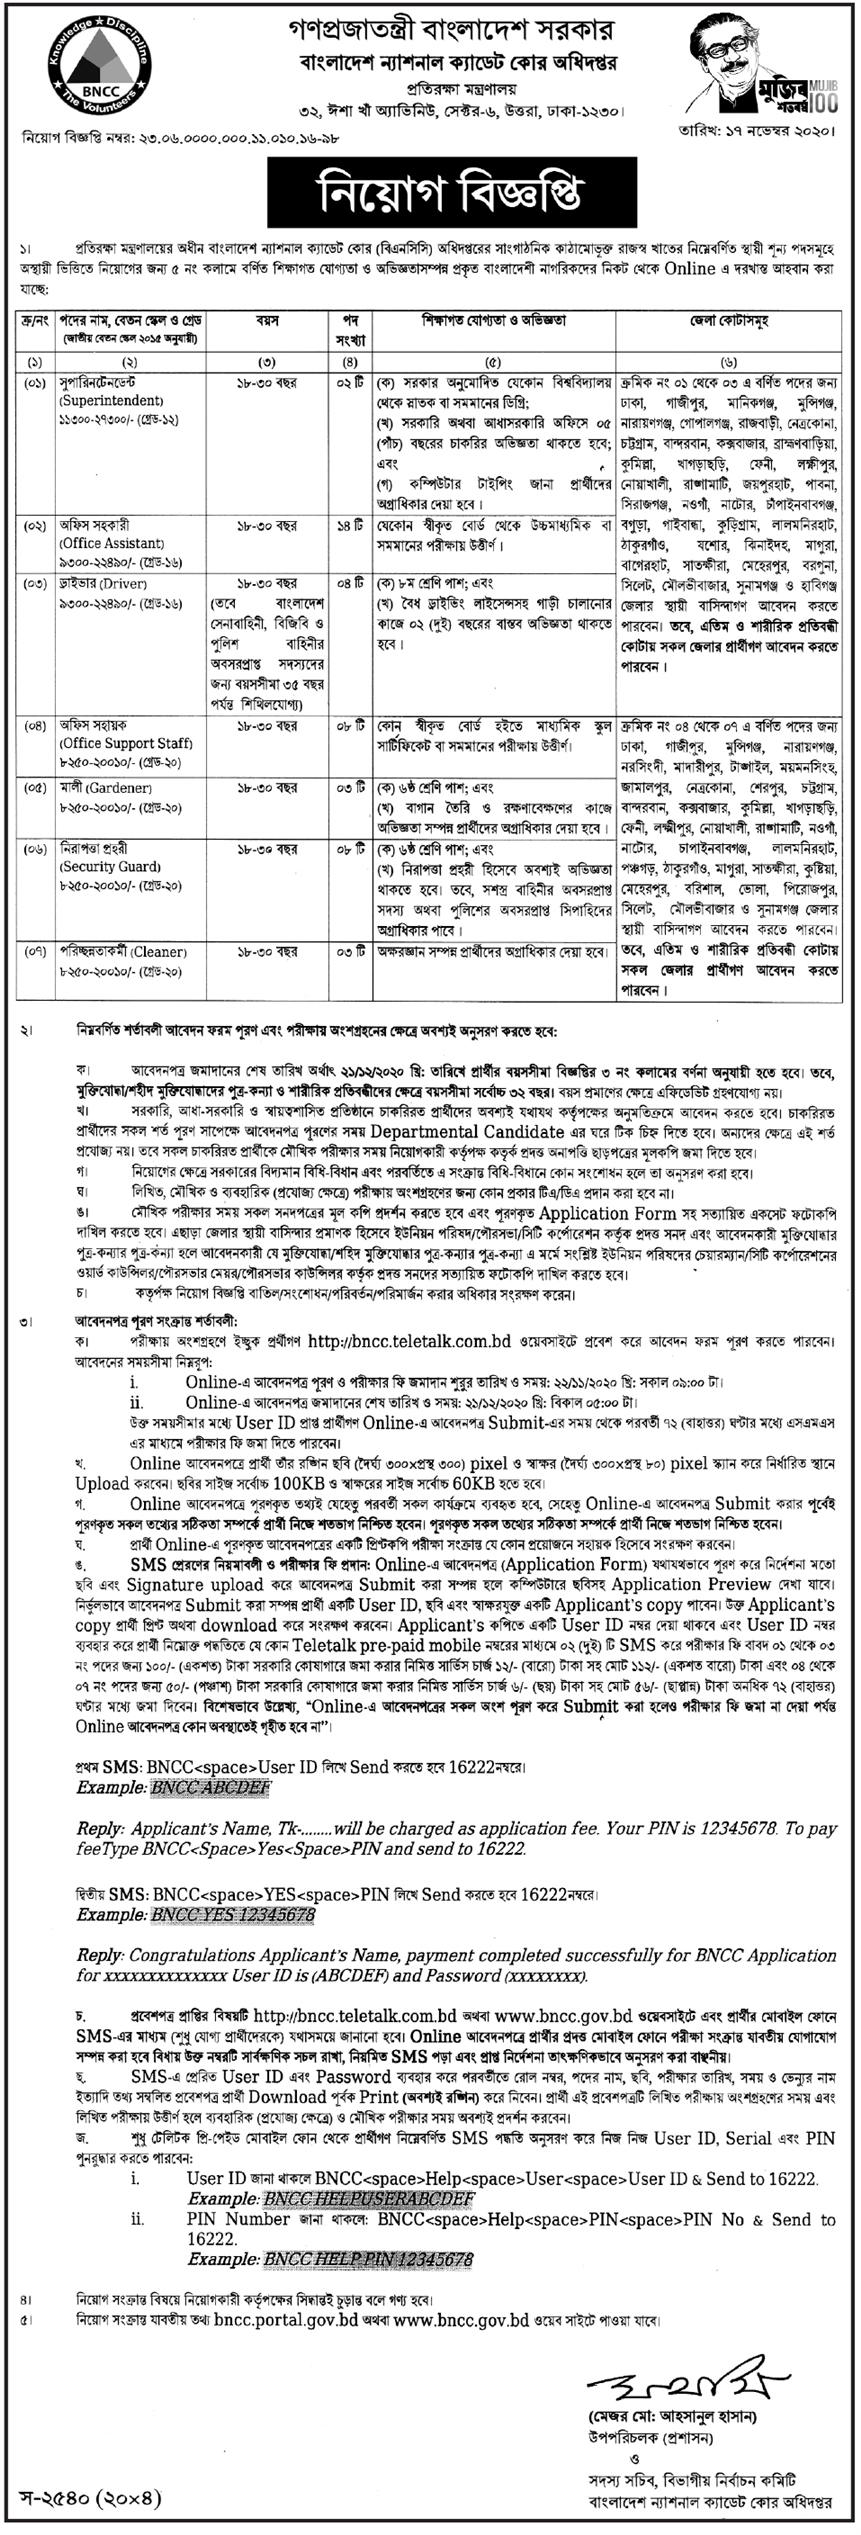 Directorate of Bangladesh National Cadet Corps (BNCC) Job Circular 2020